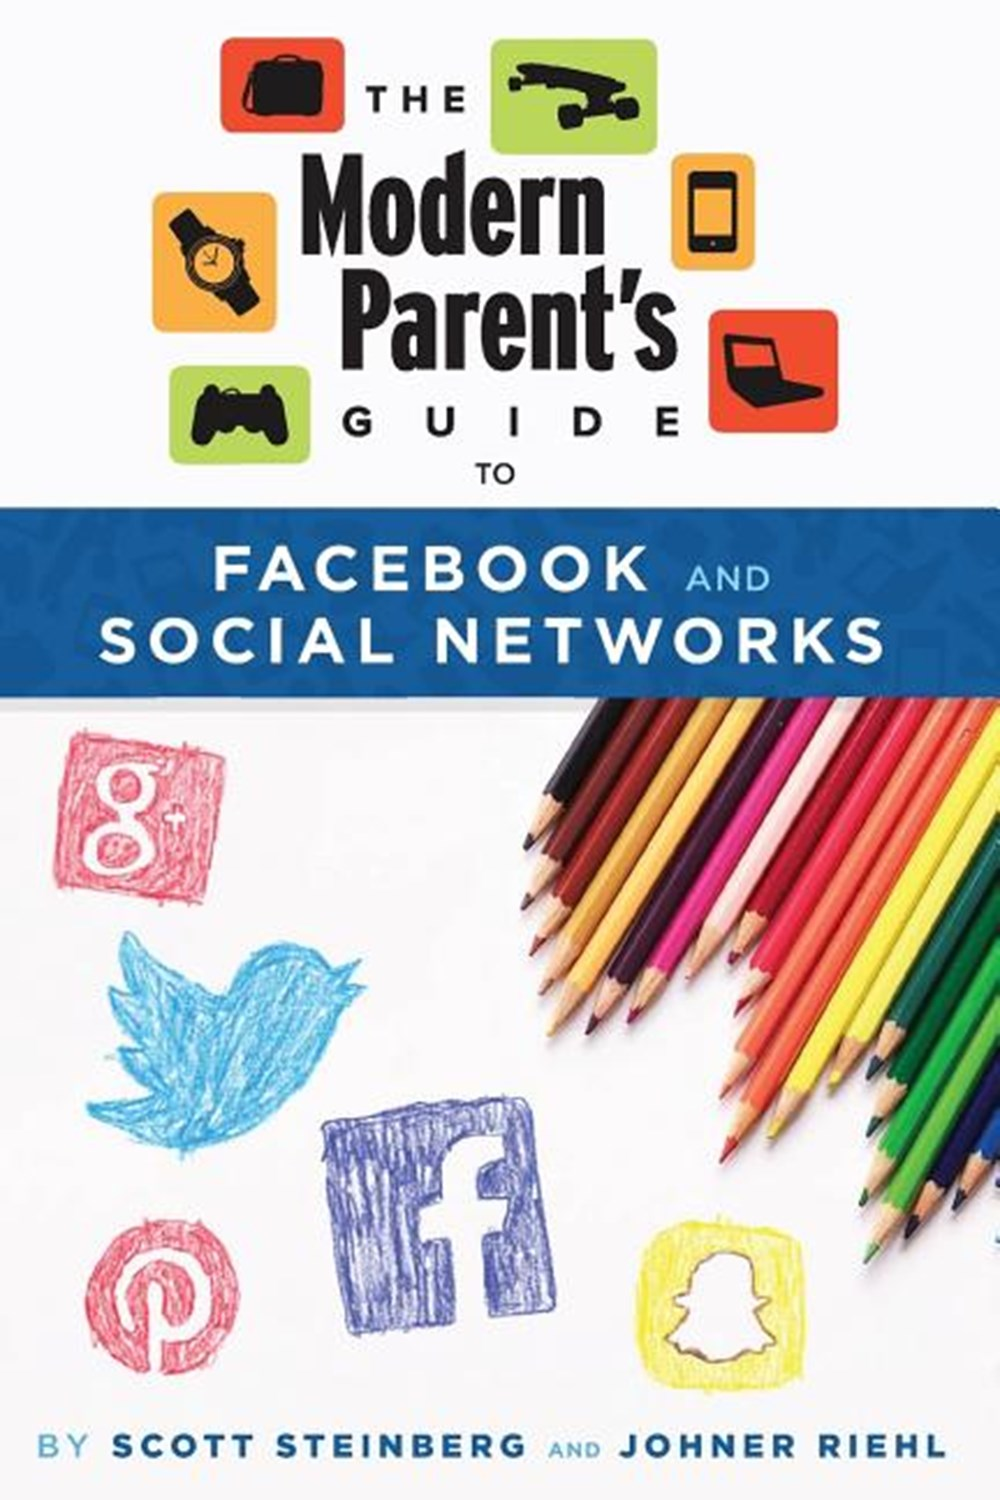 Modern Parent's Guide to Facebook and Social Networks